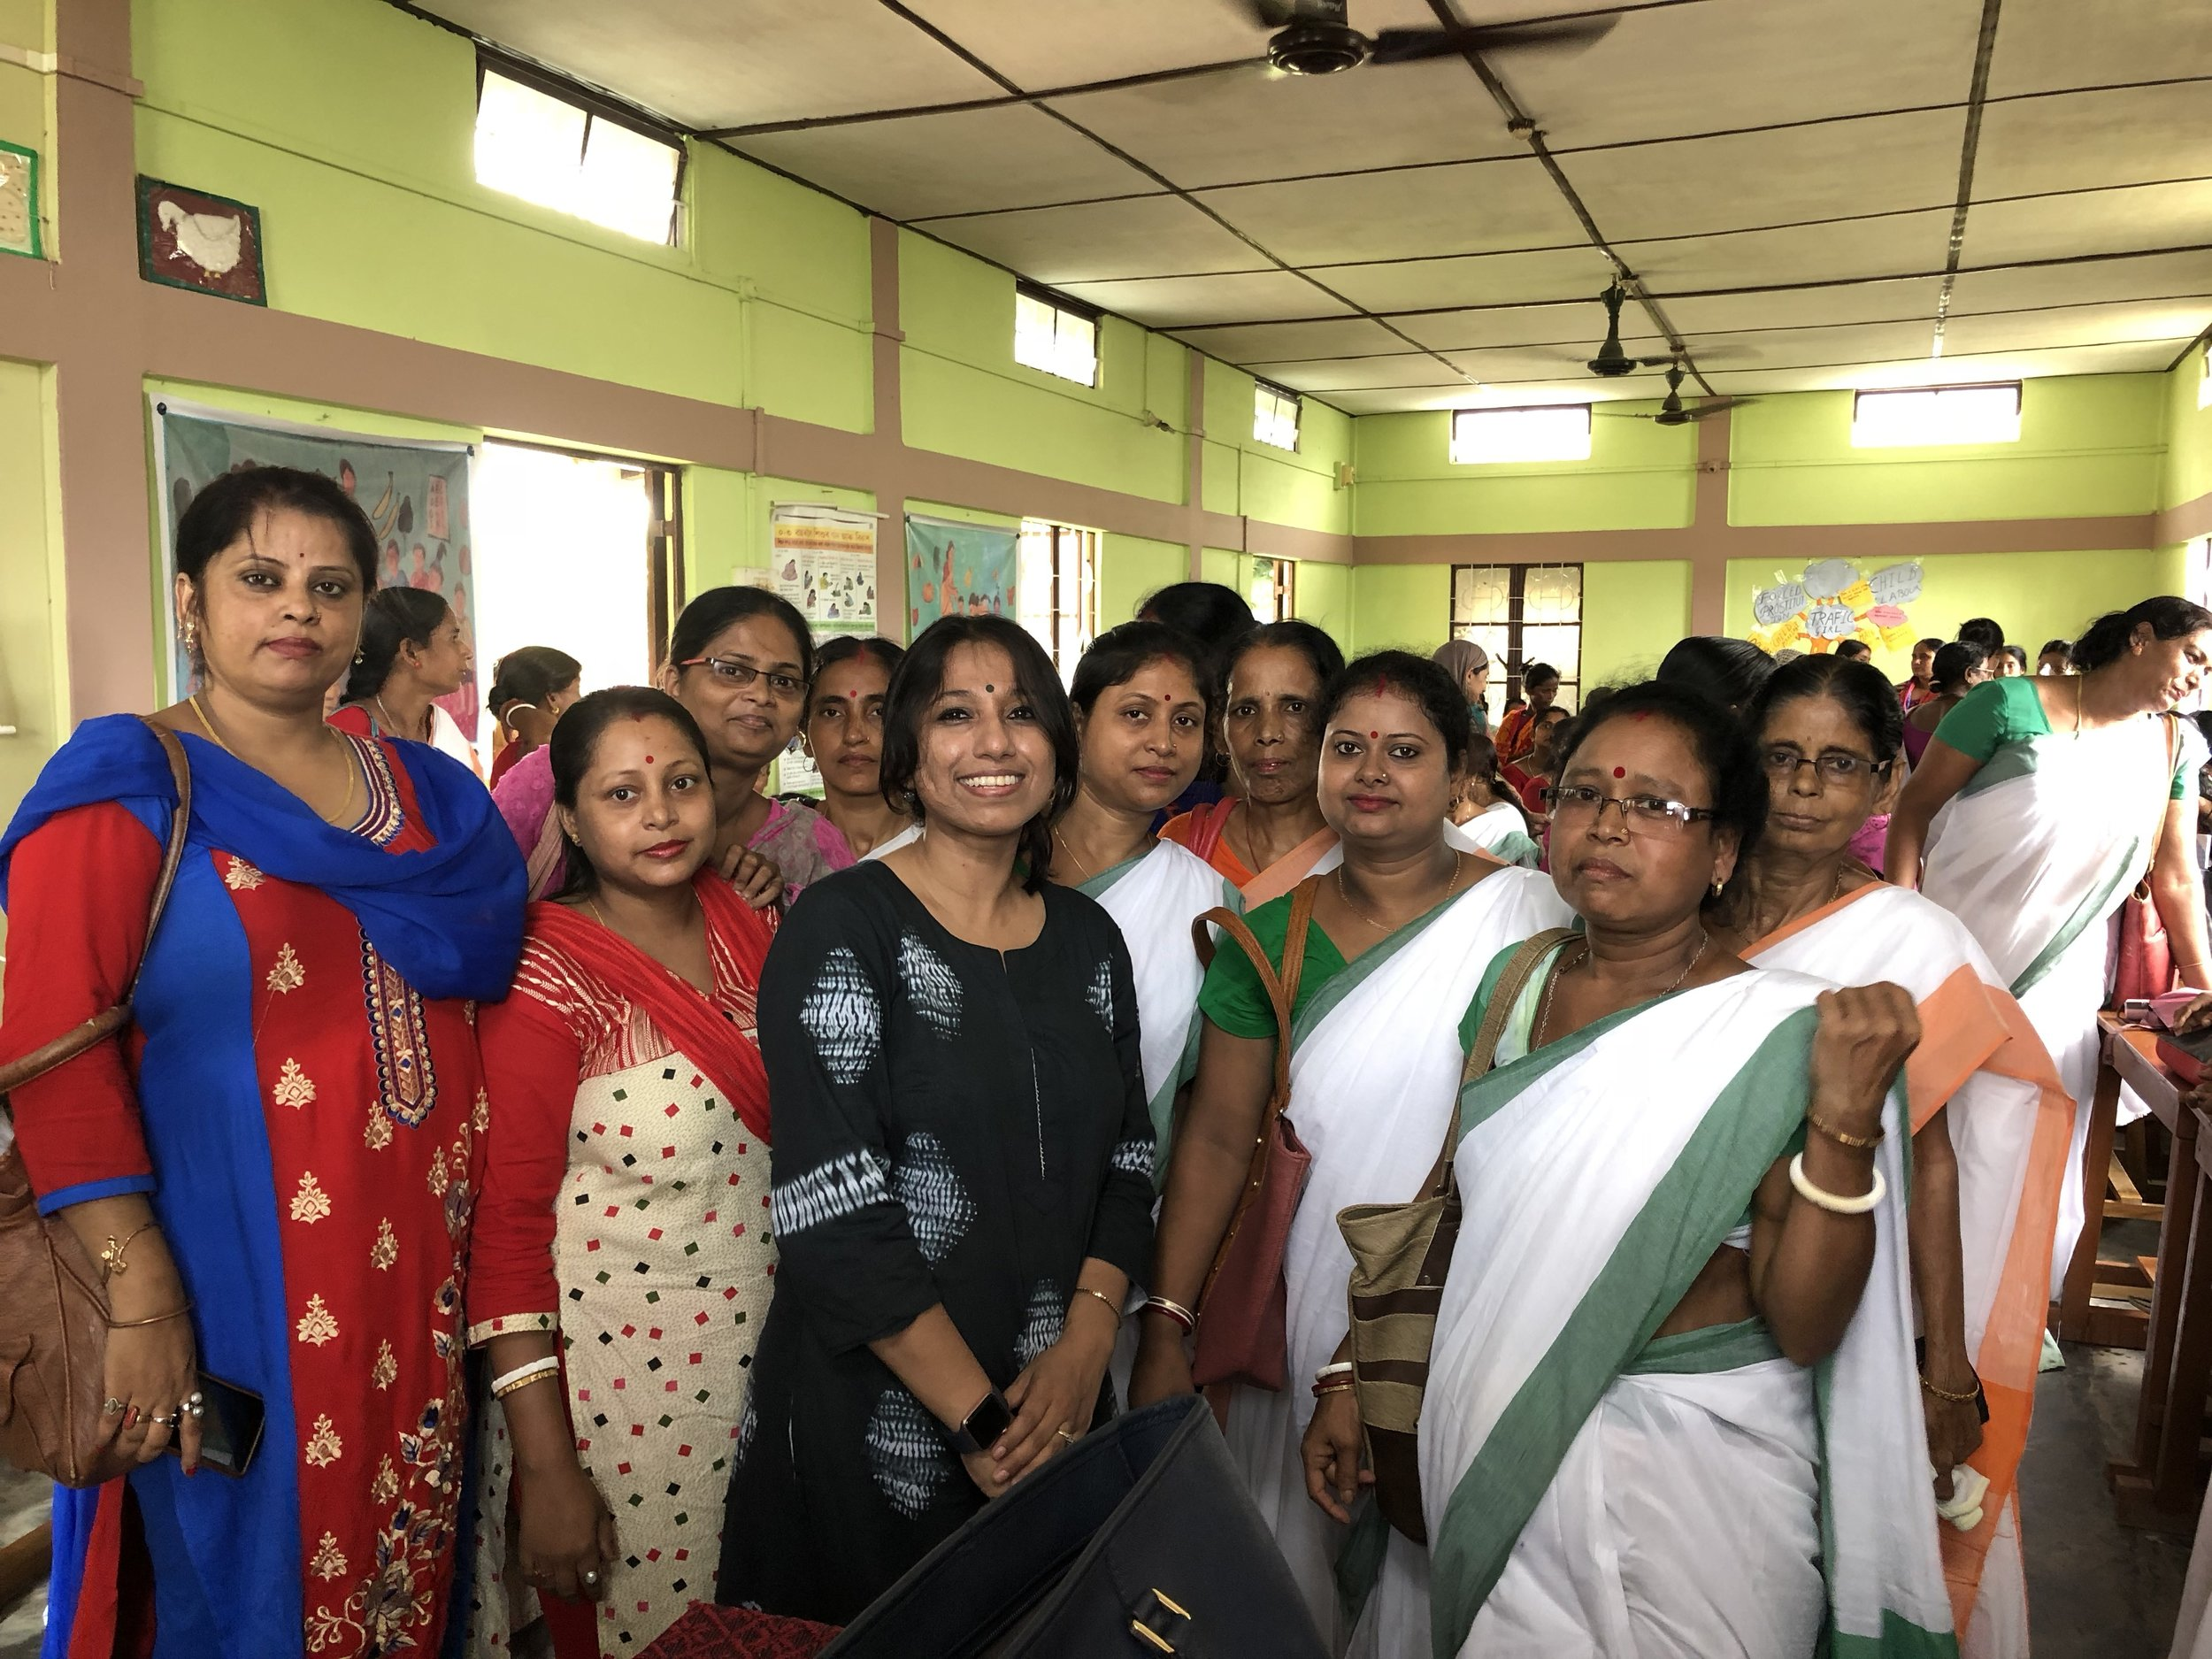 To note, many women came forward with issues about Breast health, they themselves suffering or their families going through the same but not opening up or visiting doctors - they were not aware that lumps, discharges were signs & may be Breast cancer & could cause death. An immensely rewarding session, with many women speaking up about their concerns after my presentation.